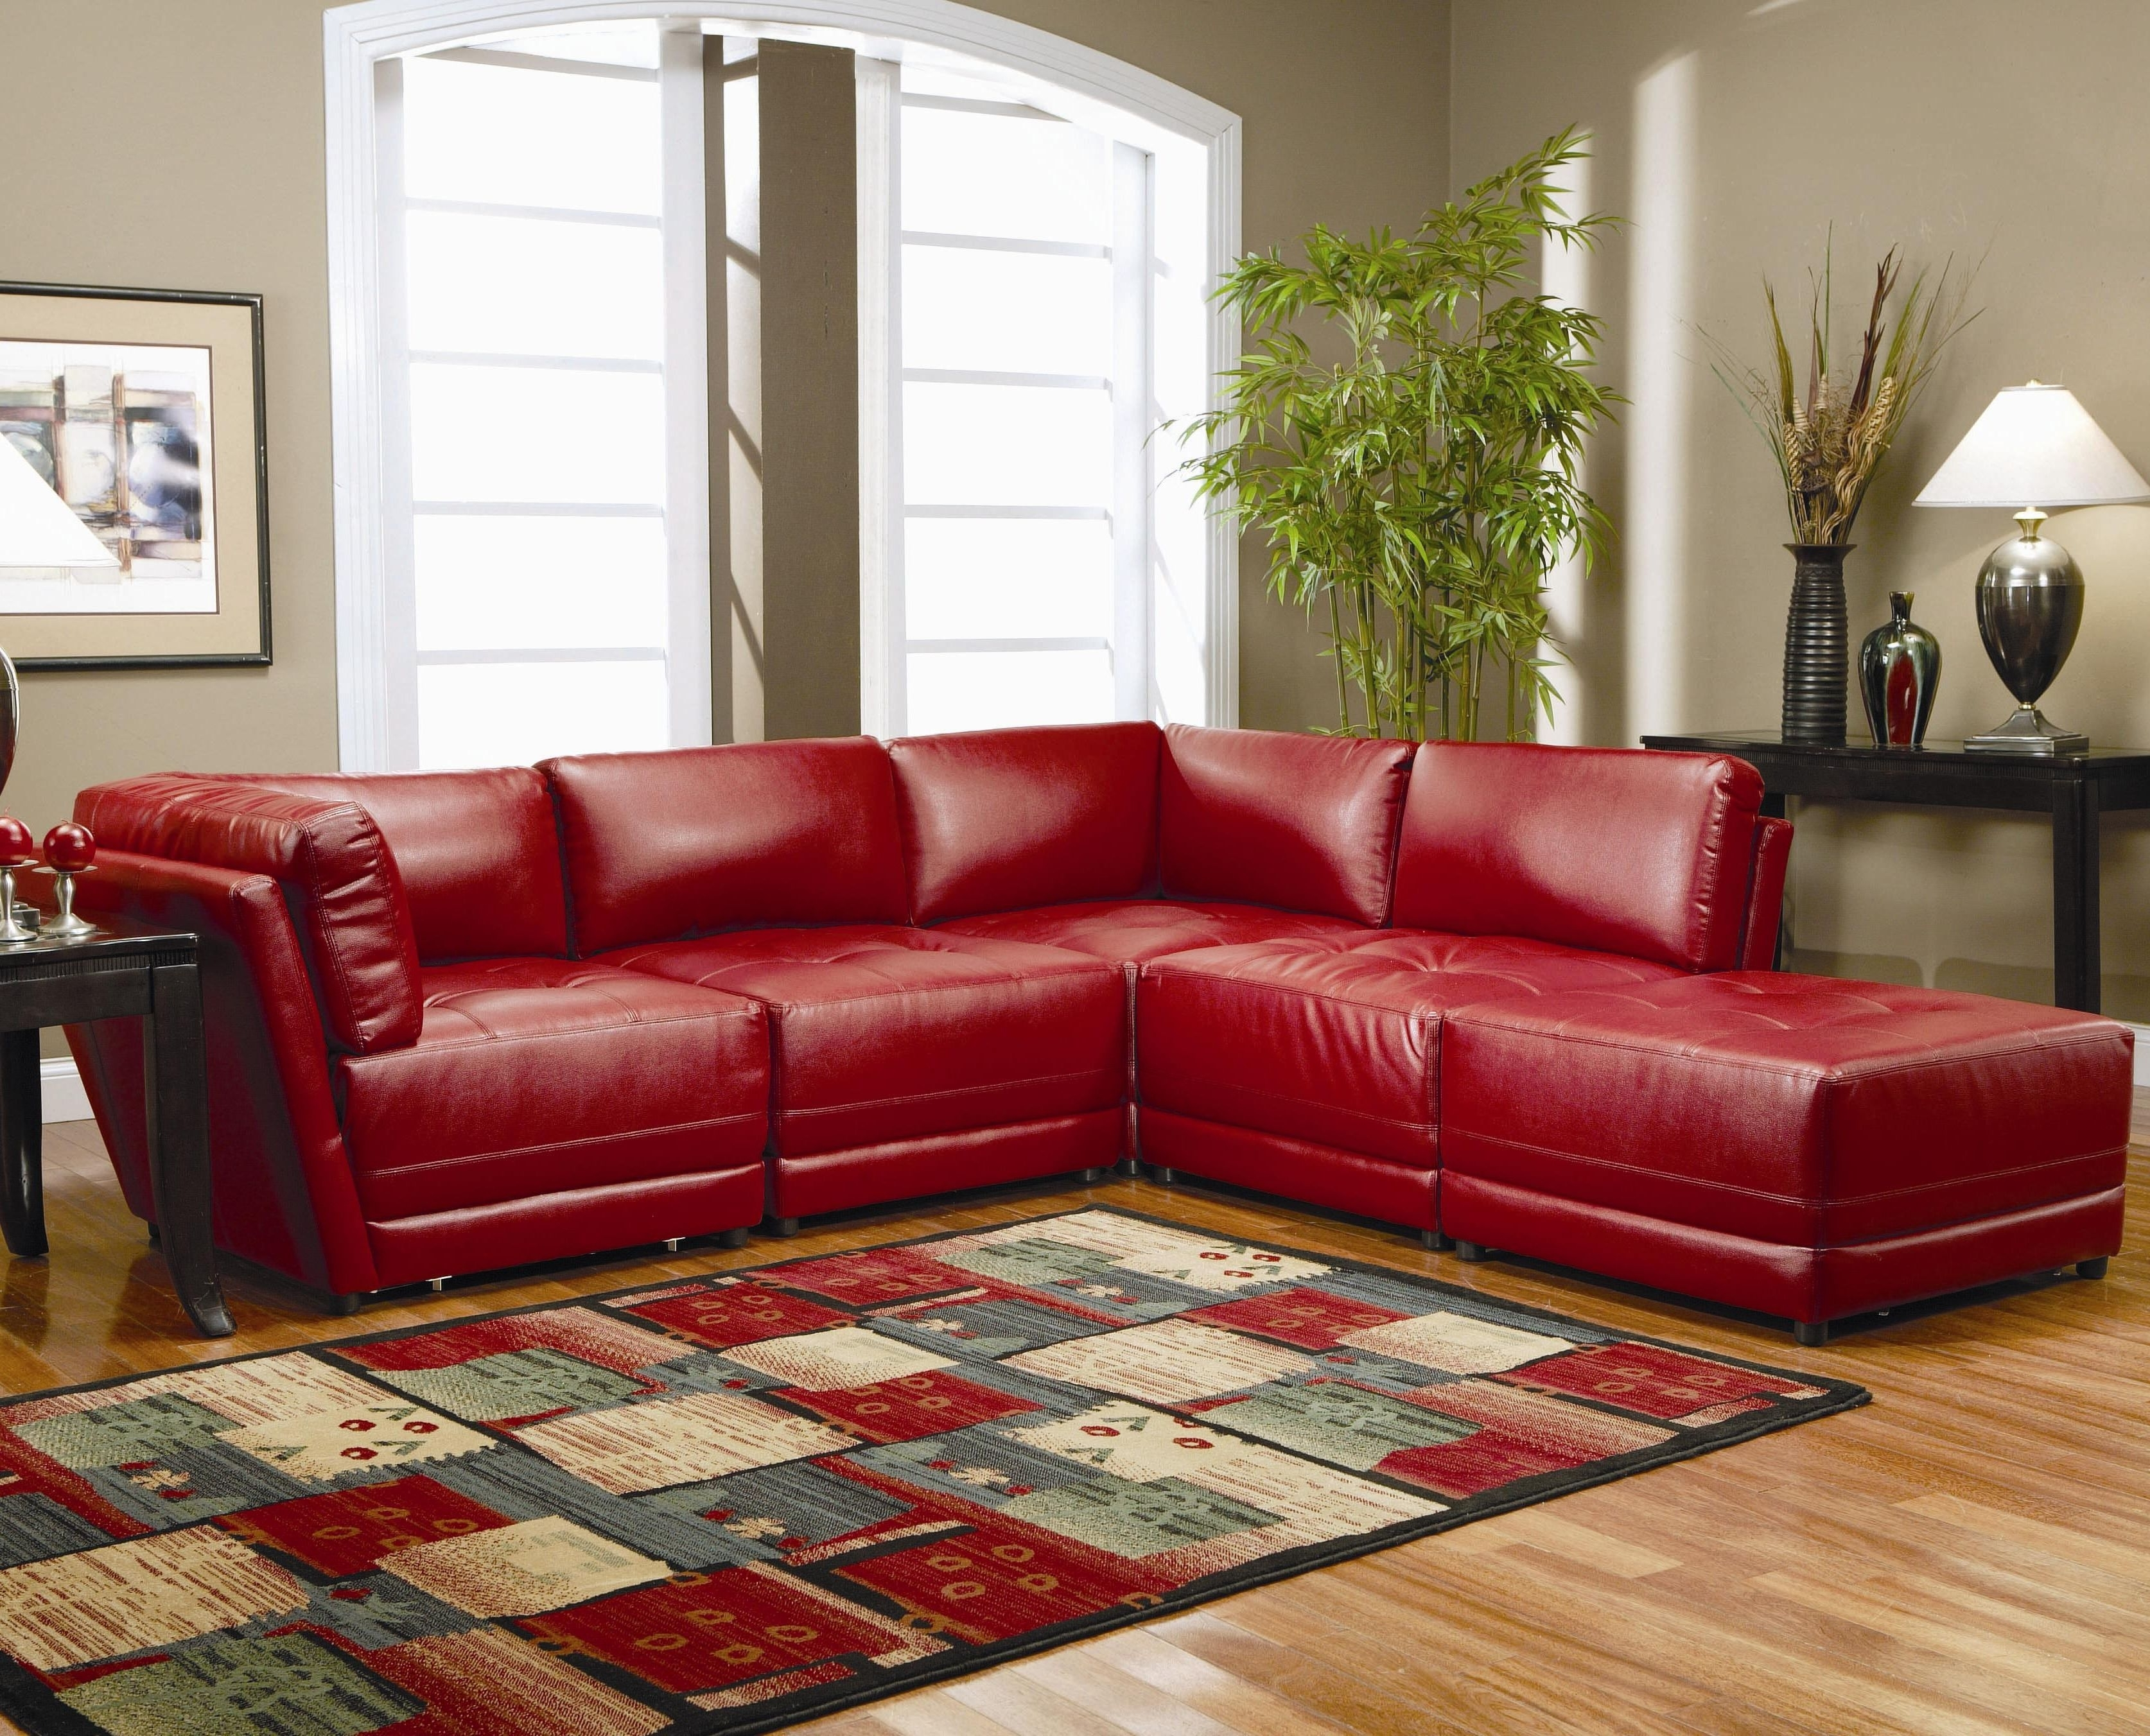 Red Leather Sectional Sofa Sale - Hotelsbacau inside Red Sectional Sofas (Image 7 of 10)